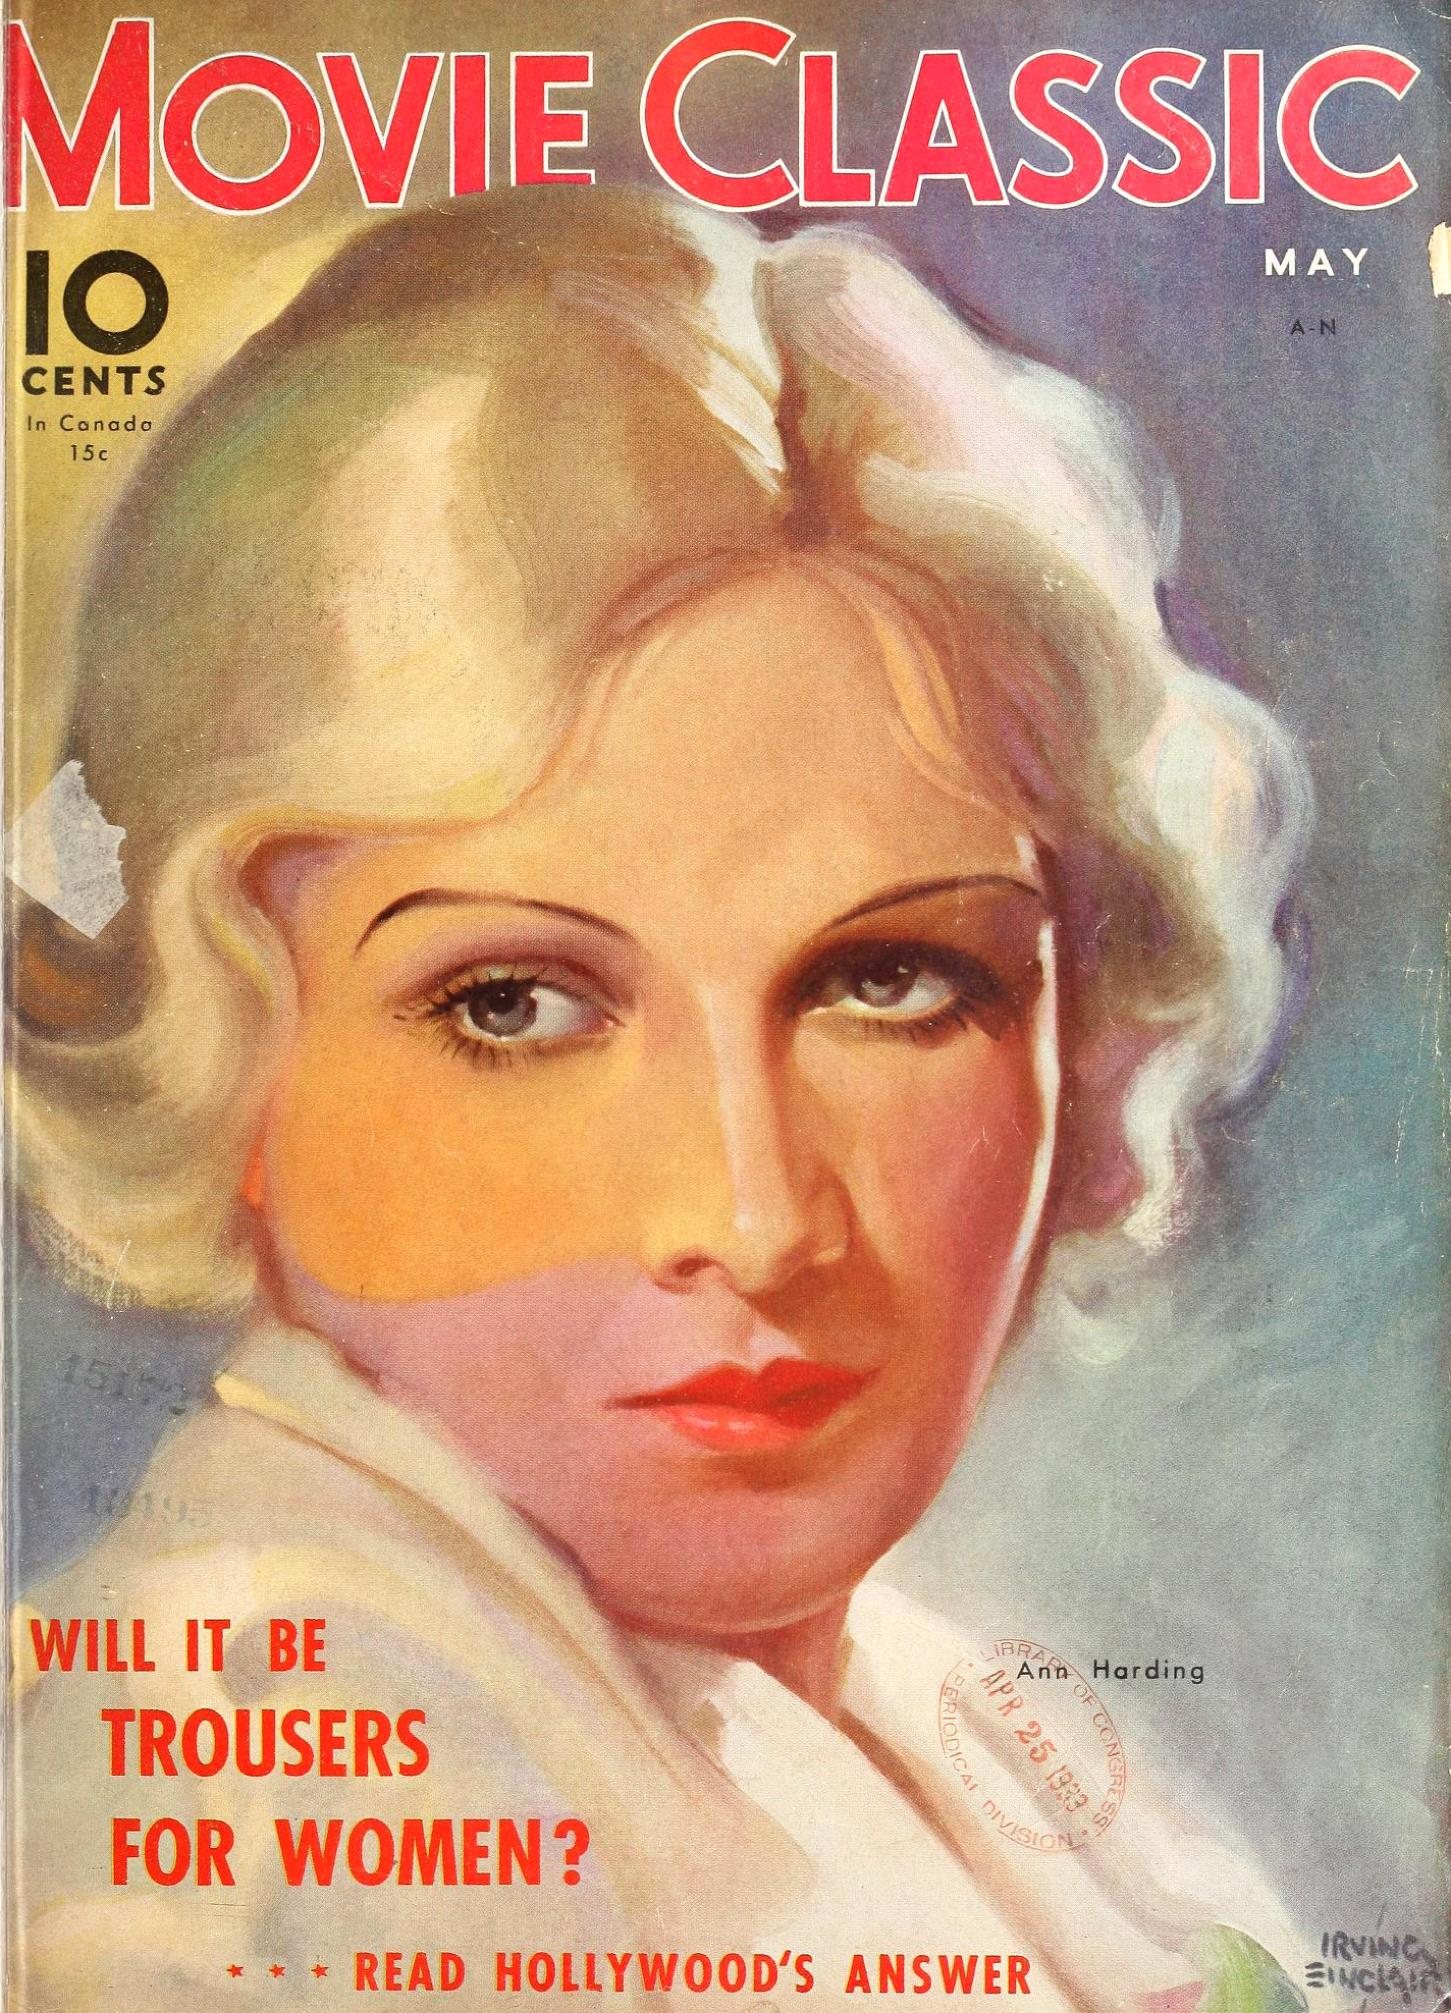 ann harding movie classic may 1933 largest